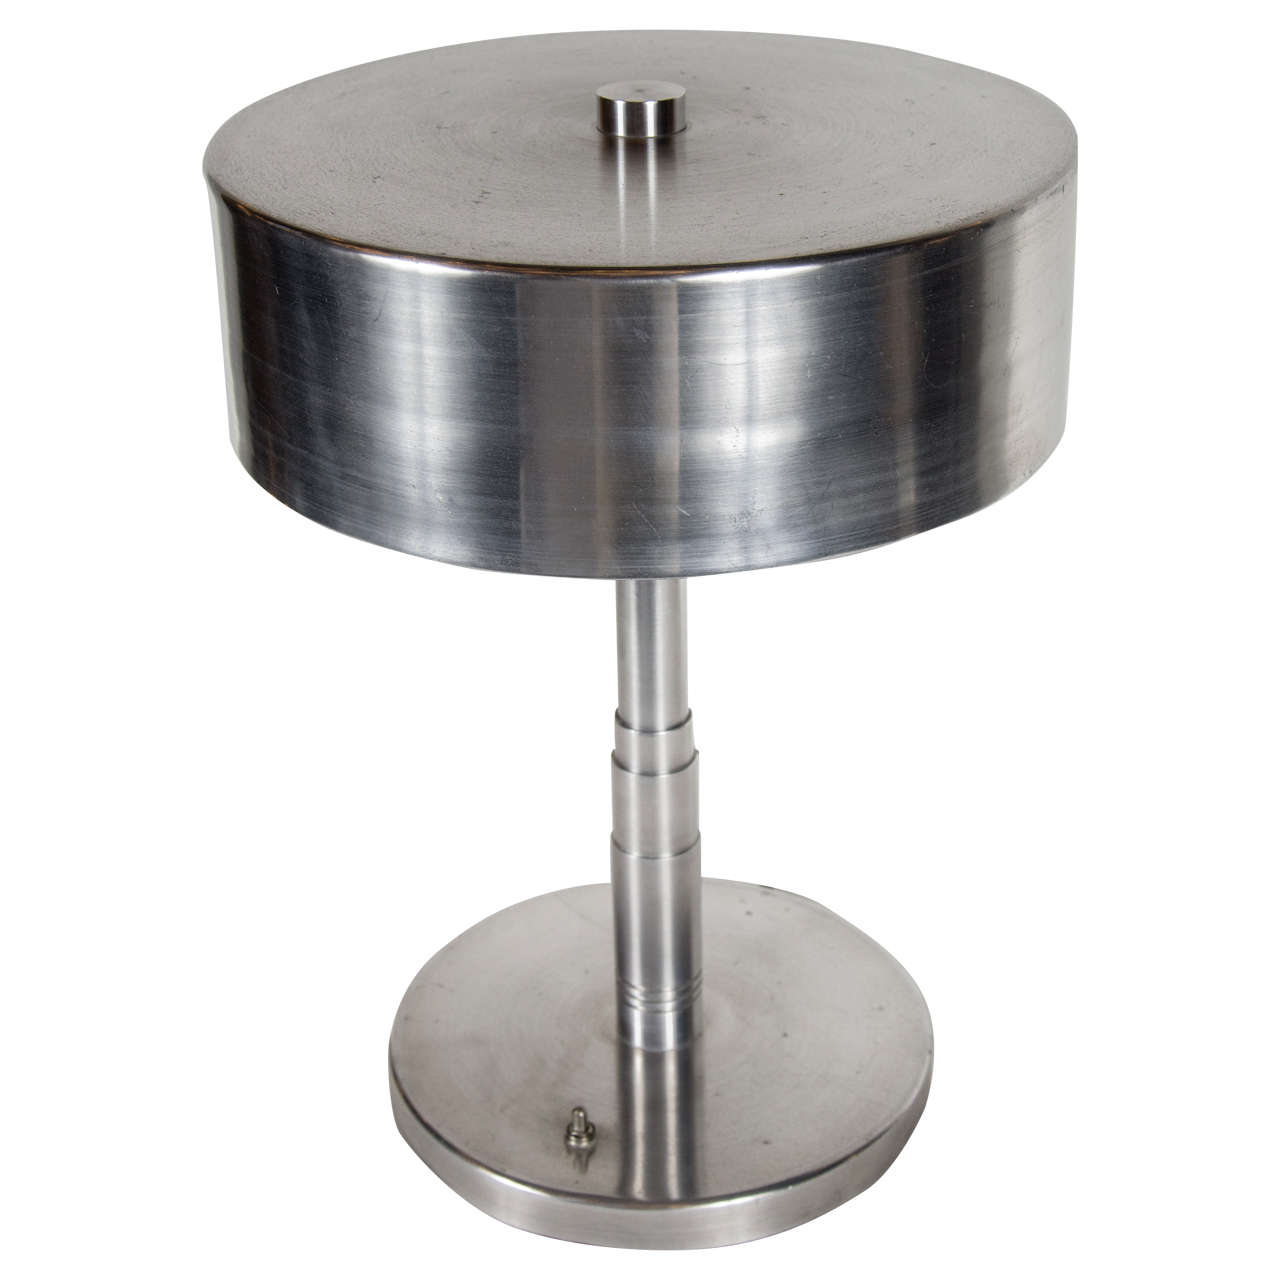 Art Deco Machine Age Desk Lamp in Brushed Nickel and ...